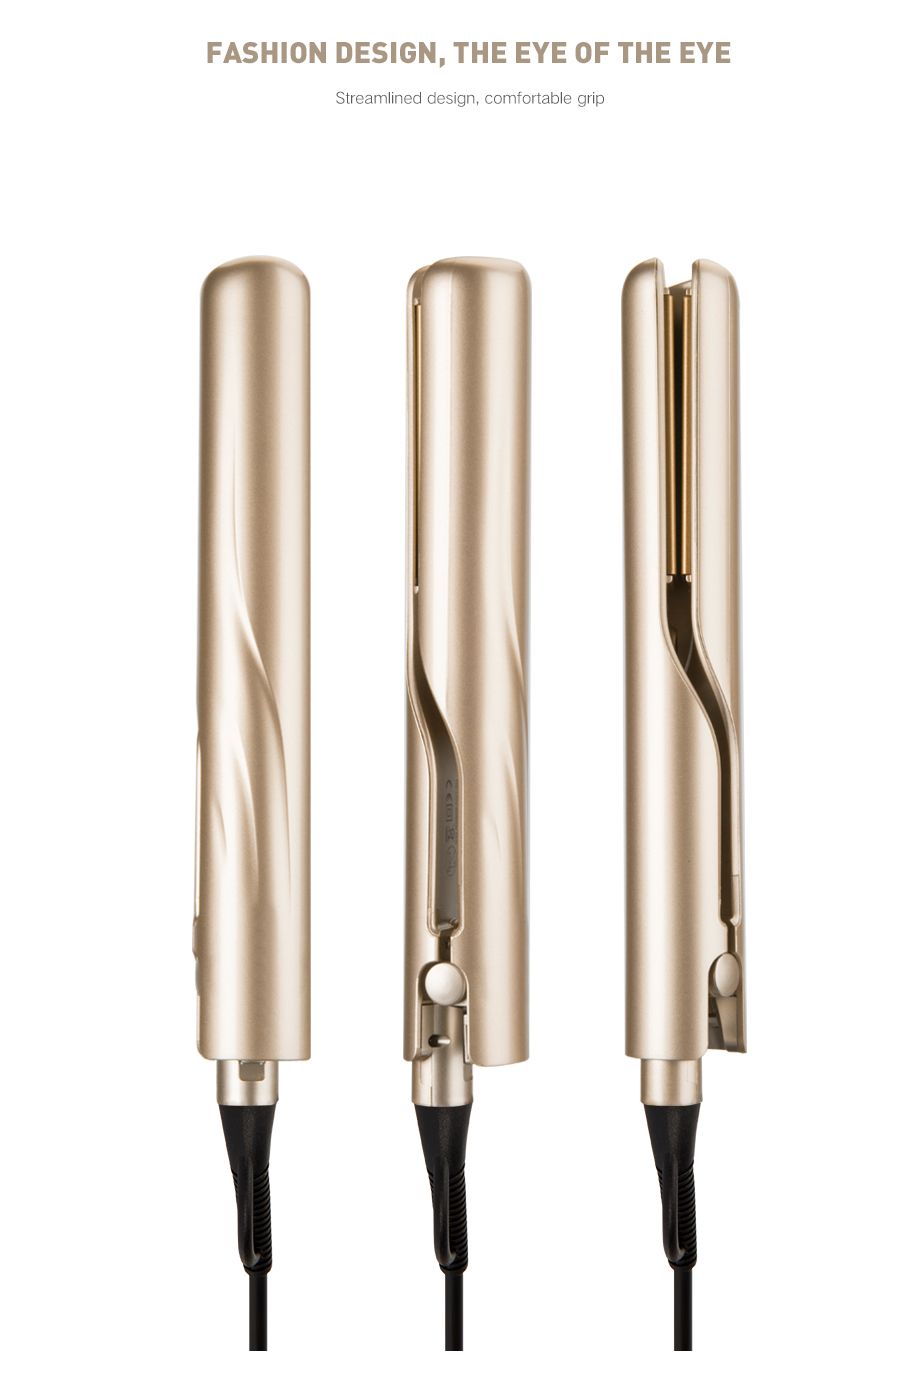 2-in-1 Rechargeable Hair Straightener & Curling Iron 7